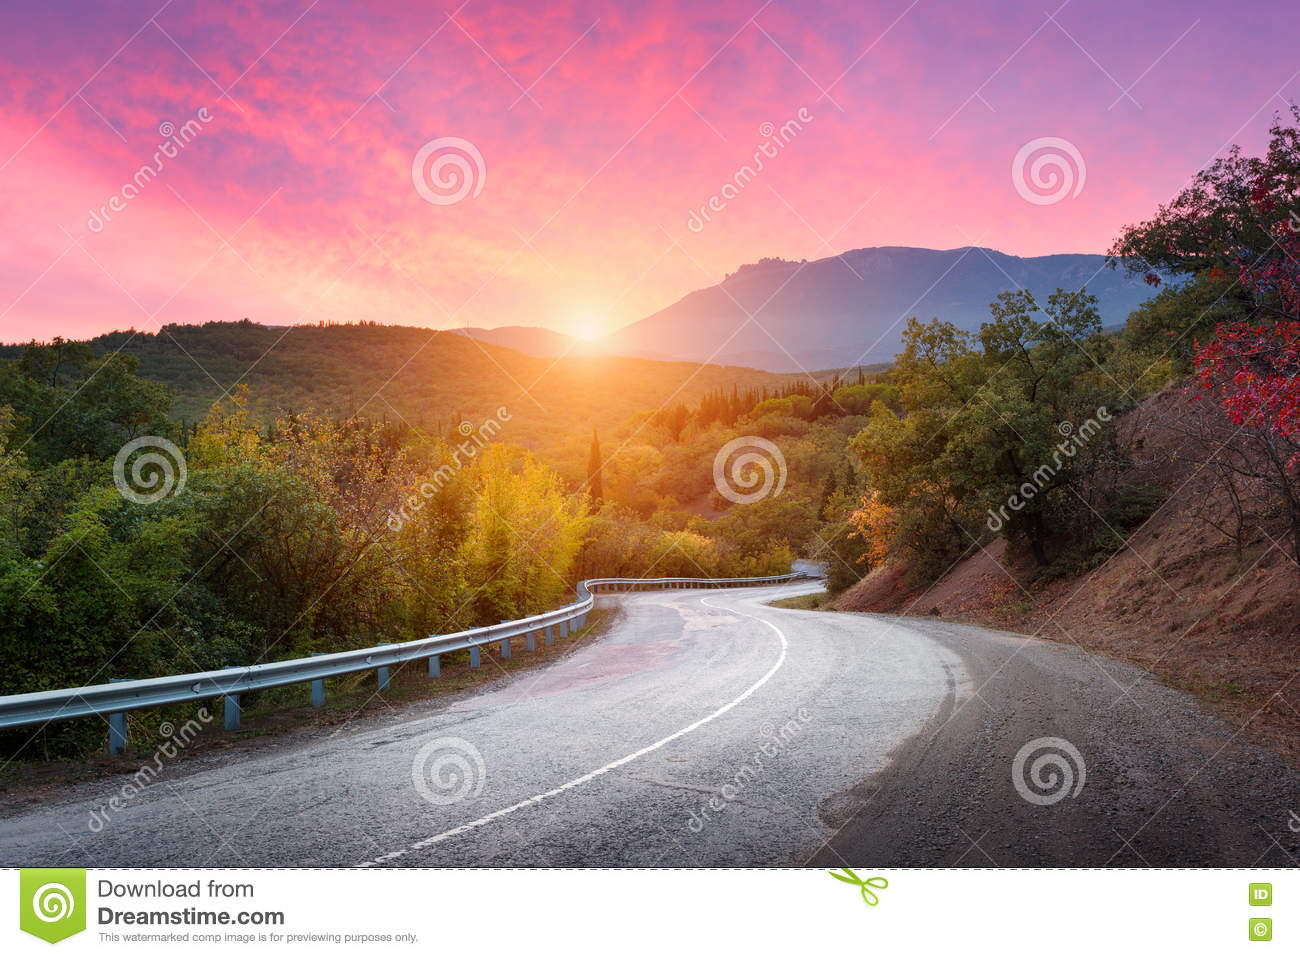 Download Mountain Road Passing Through The Forest With Dramatic Colorful Sky And Red Clouds At Colorful Sunset In Summer. Mountain Stock Photo - Image of journey, outdoor: 73321112